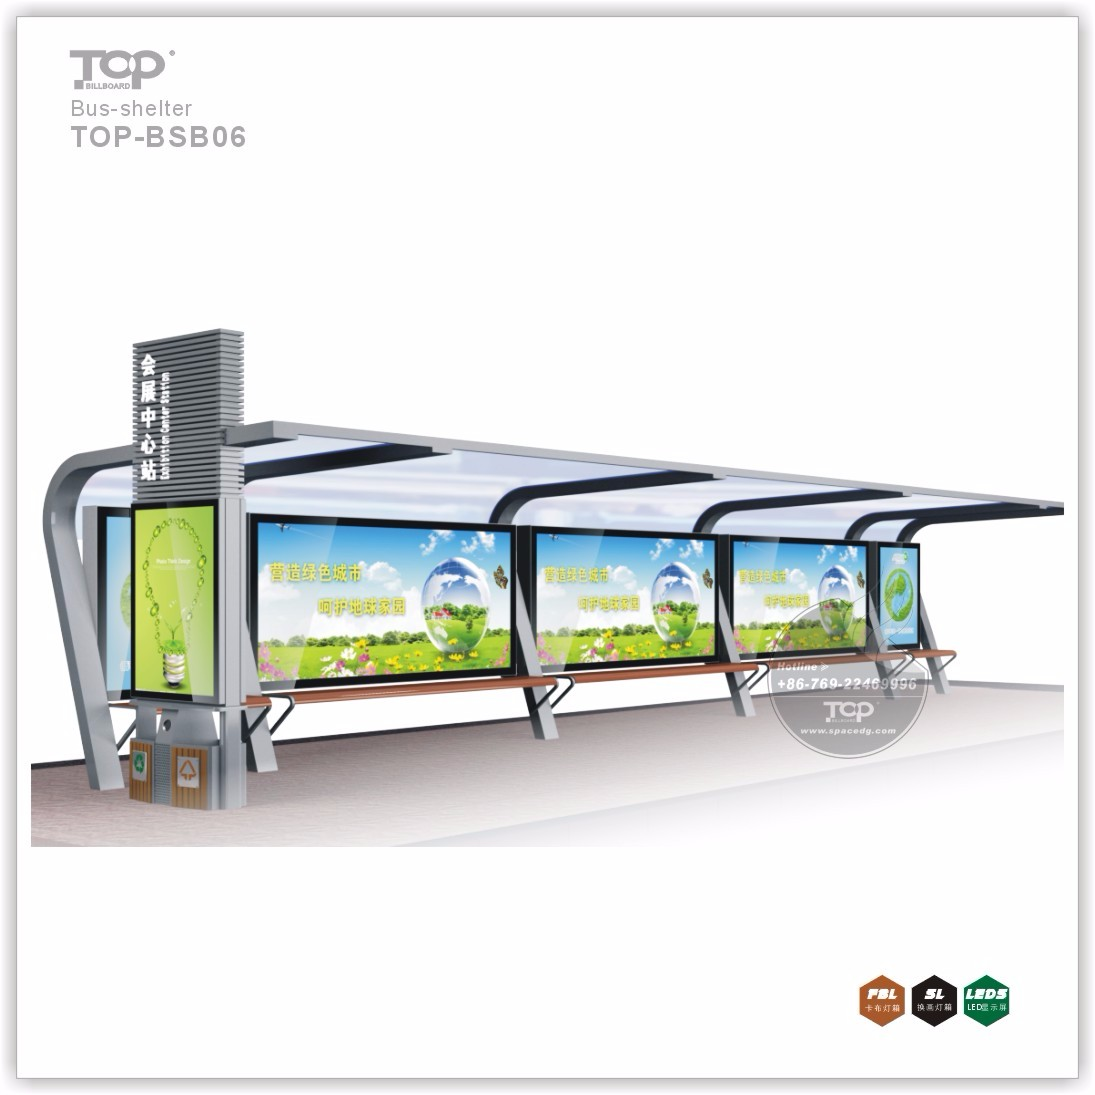 Stainless Steel Bus Stop Shelter LED Light Box